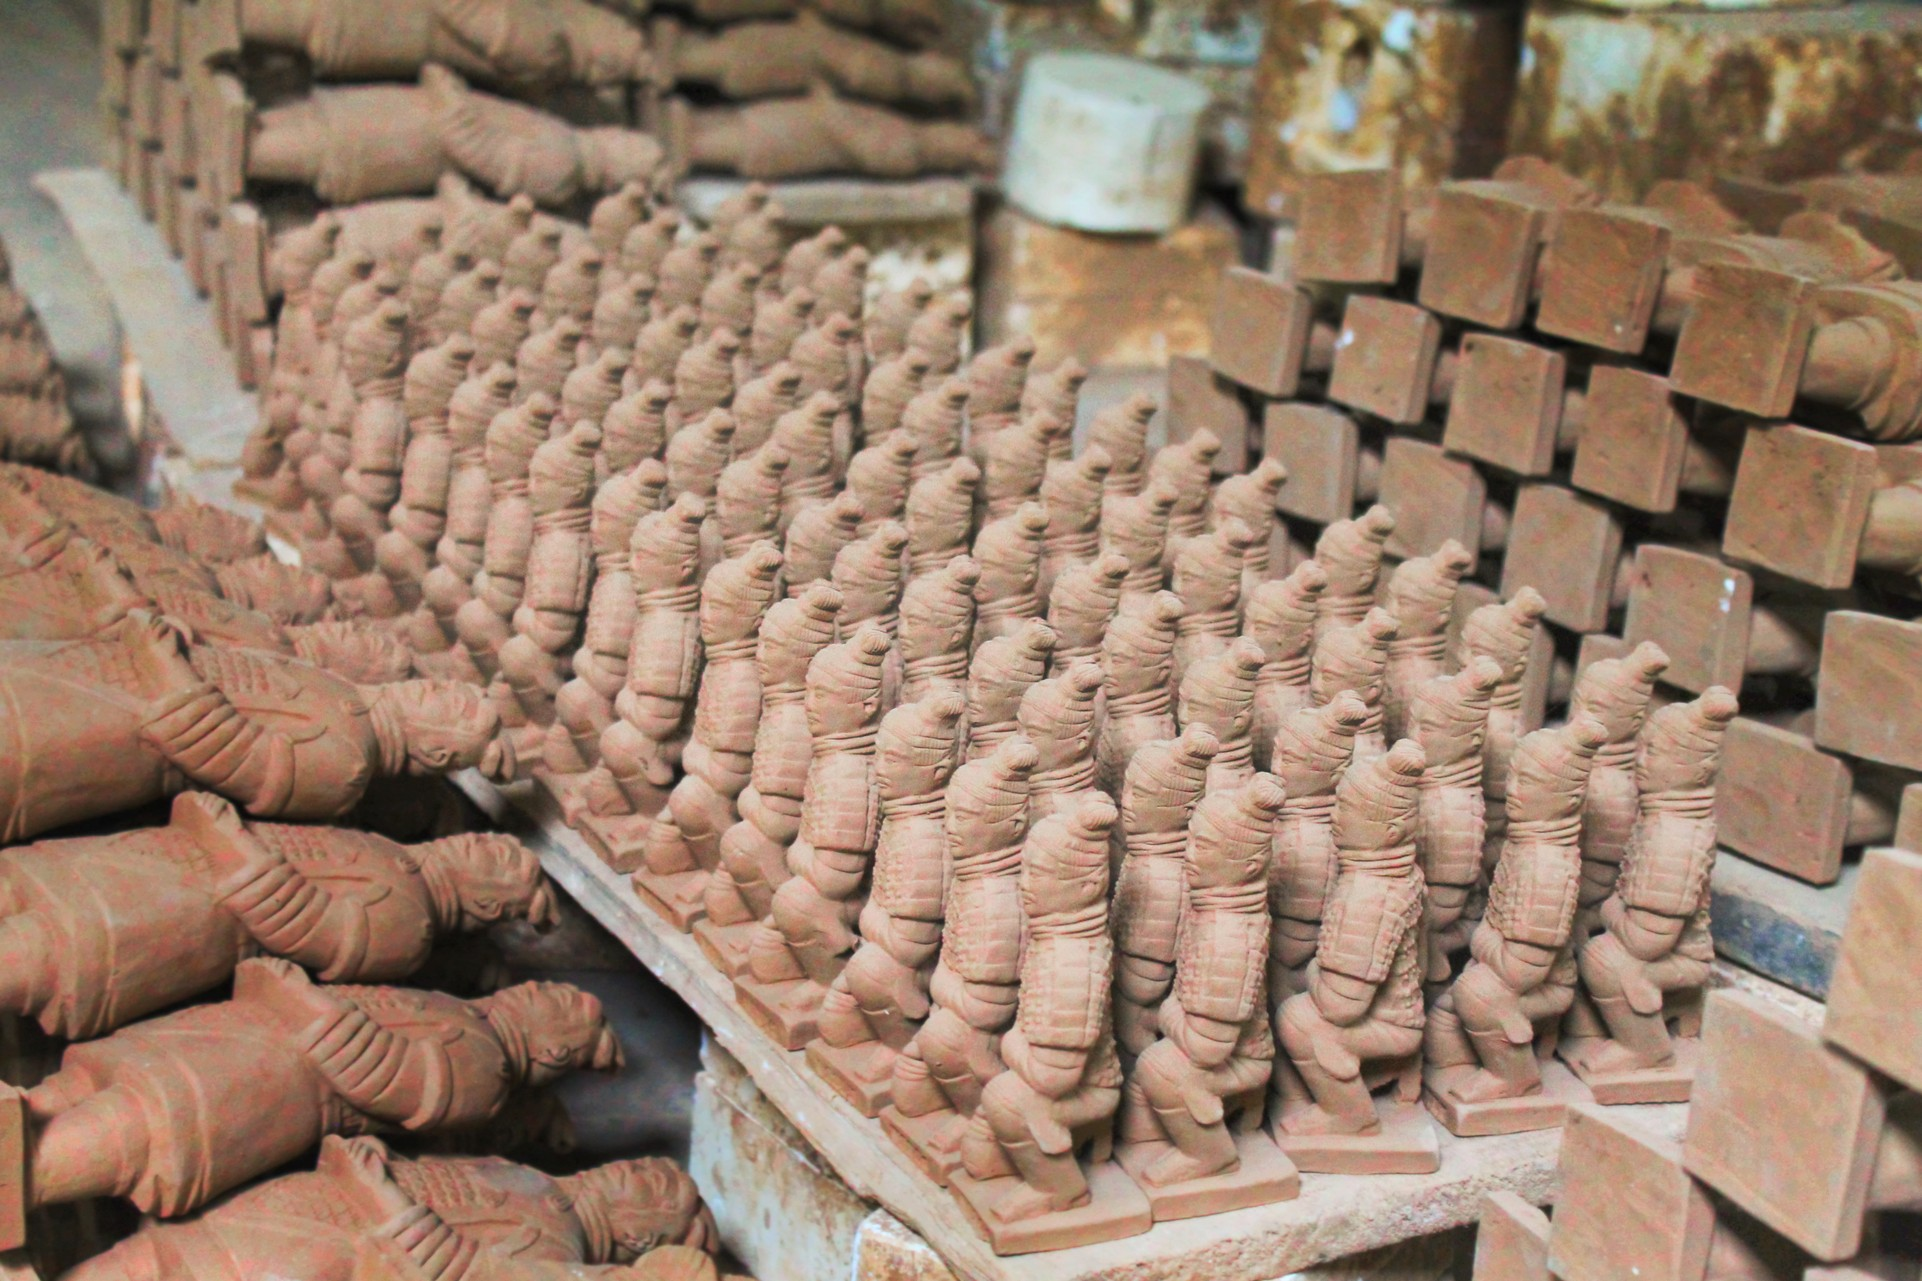 terracotta-soldiers-in-kiln-xian-1